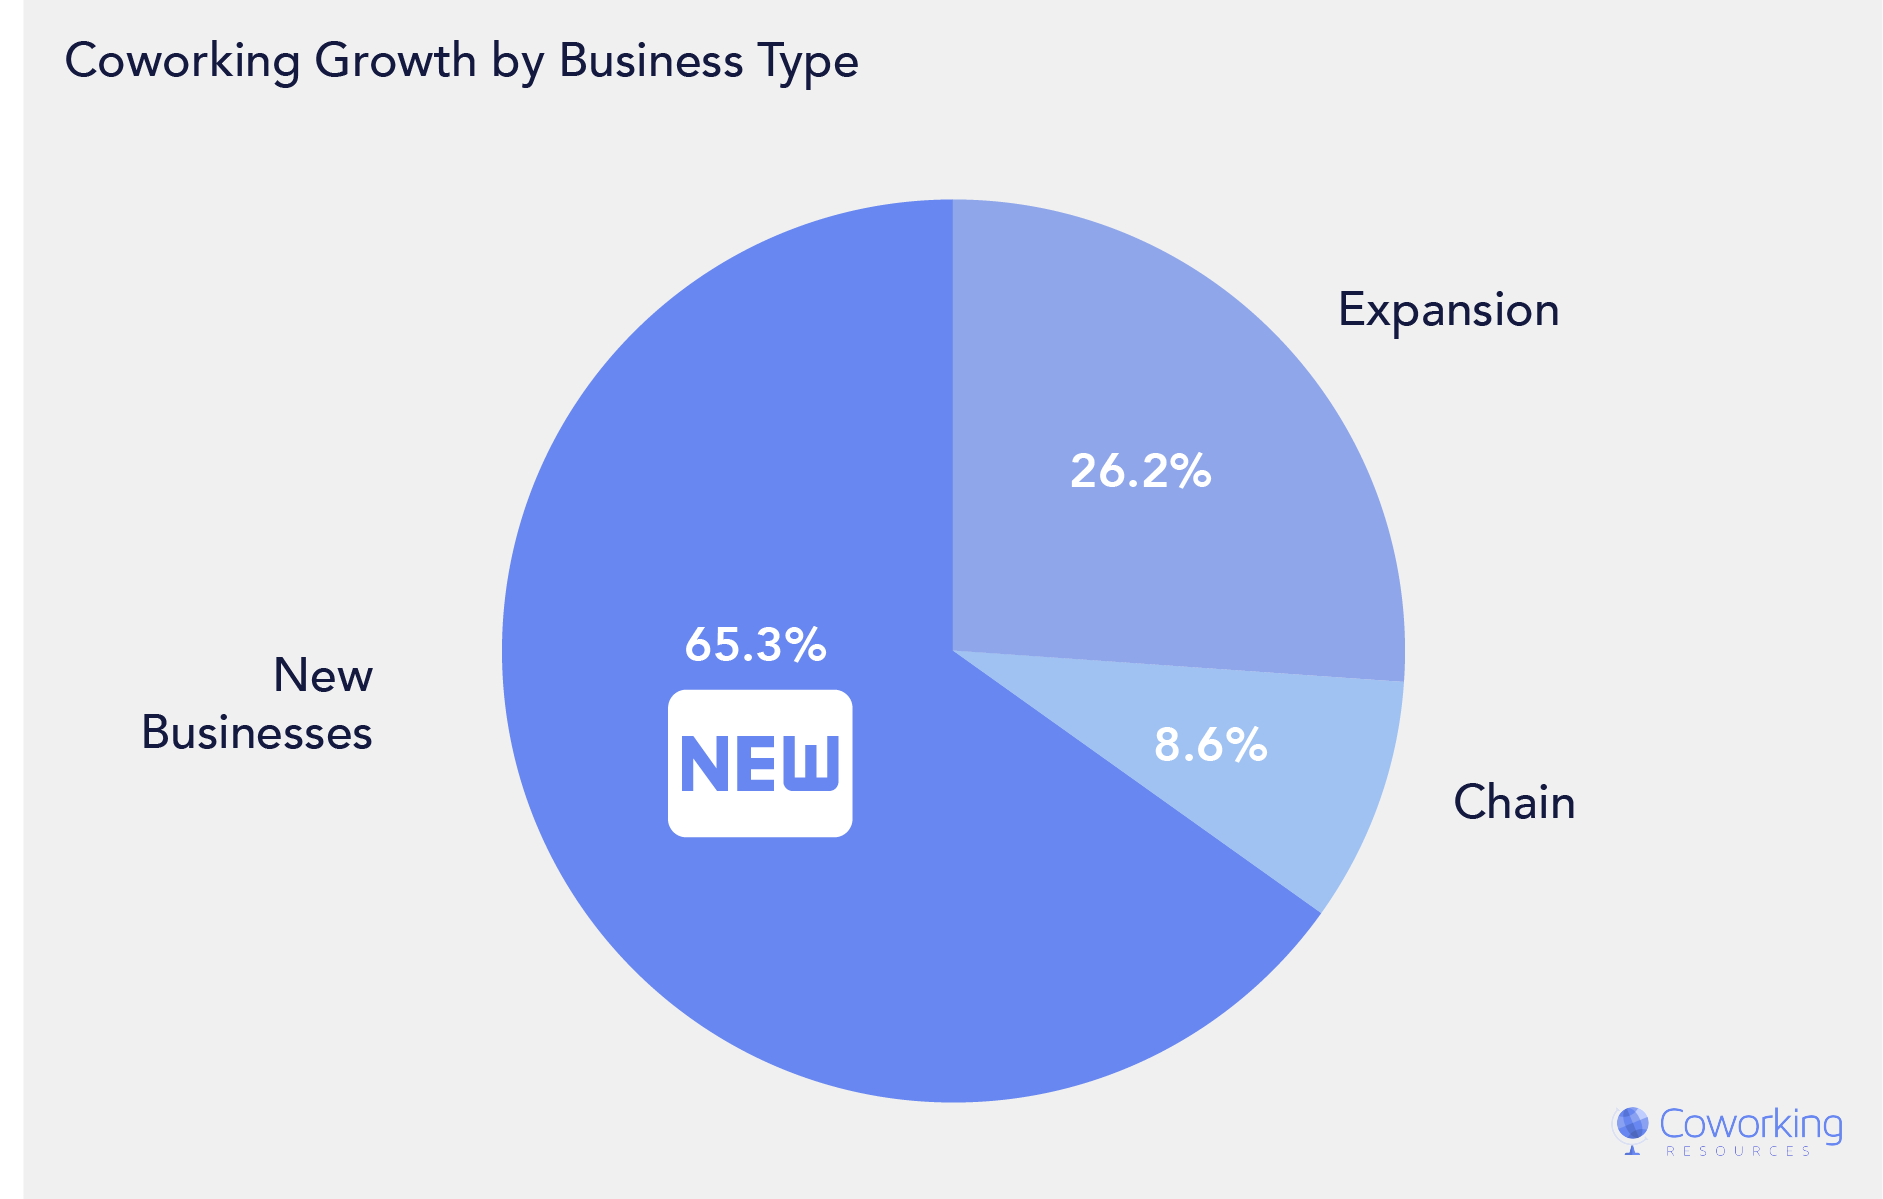 Coworking Space Market Size by Business Types